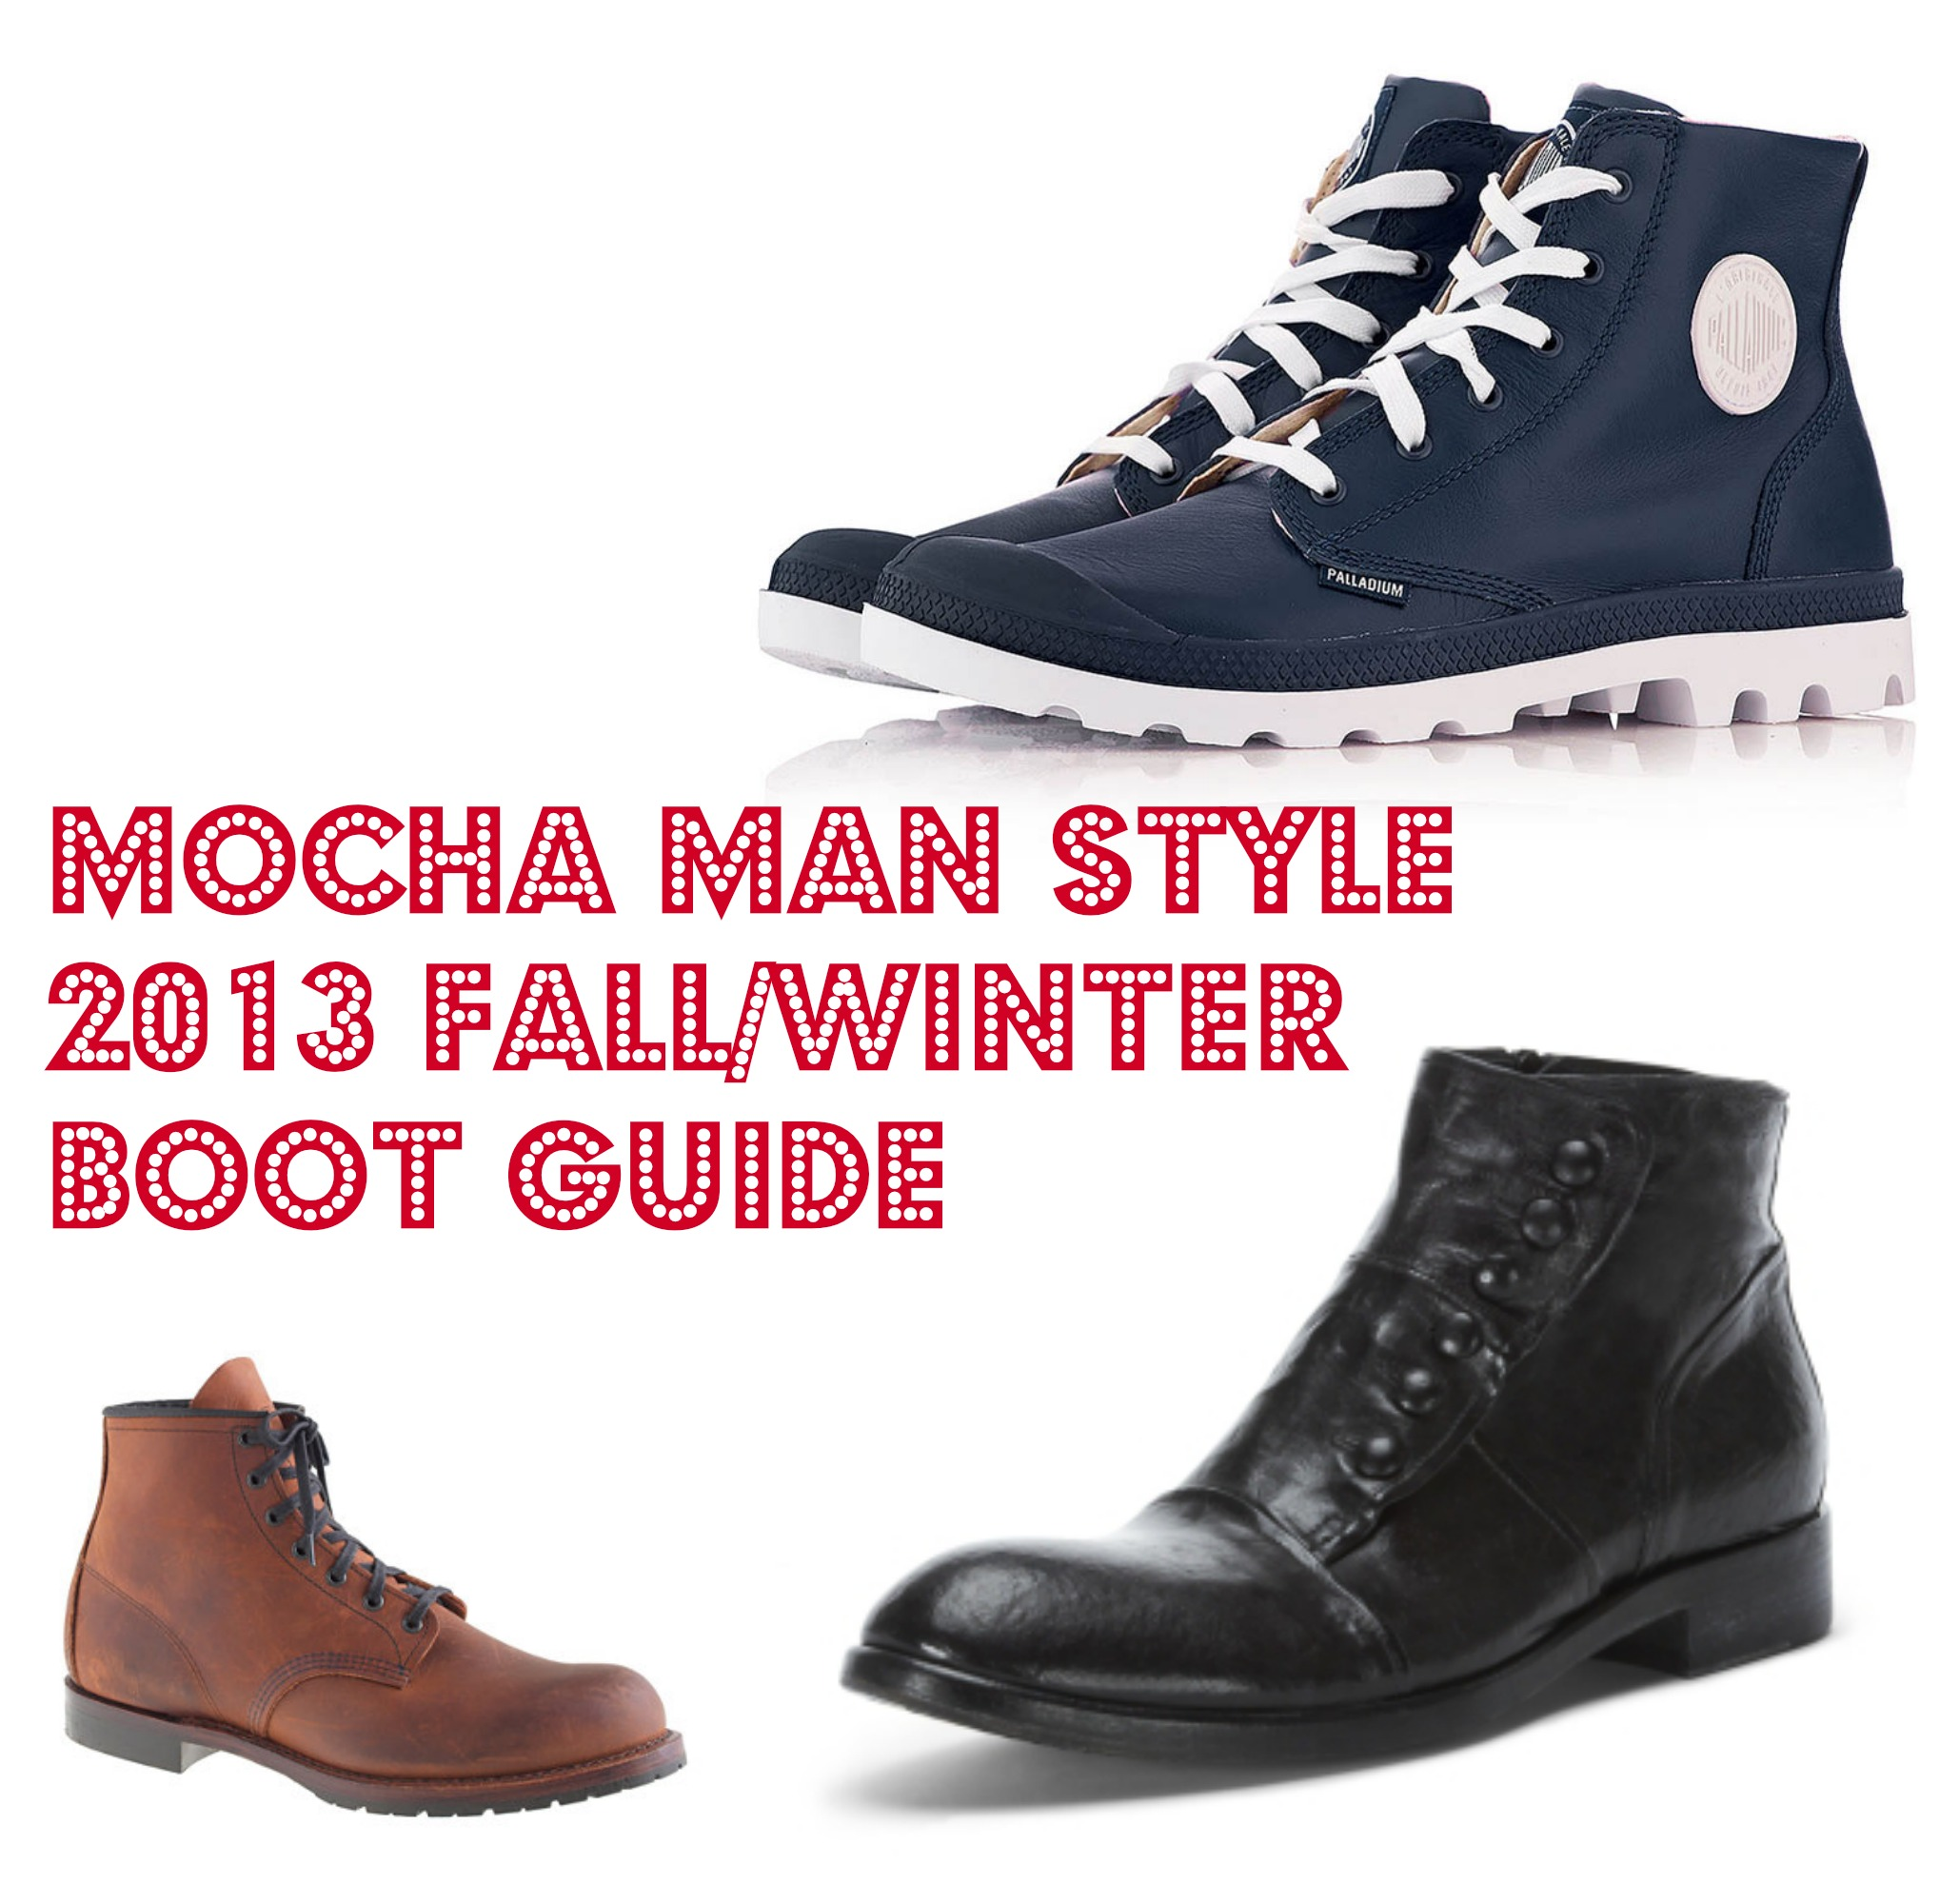 2013 Fall/Winter Boot Guide